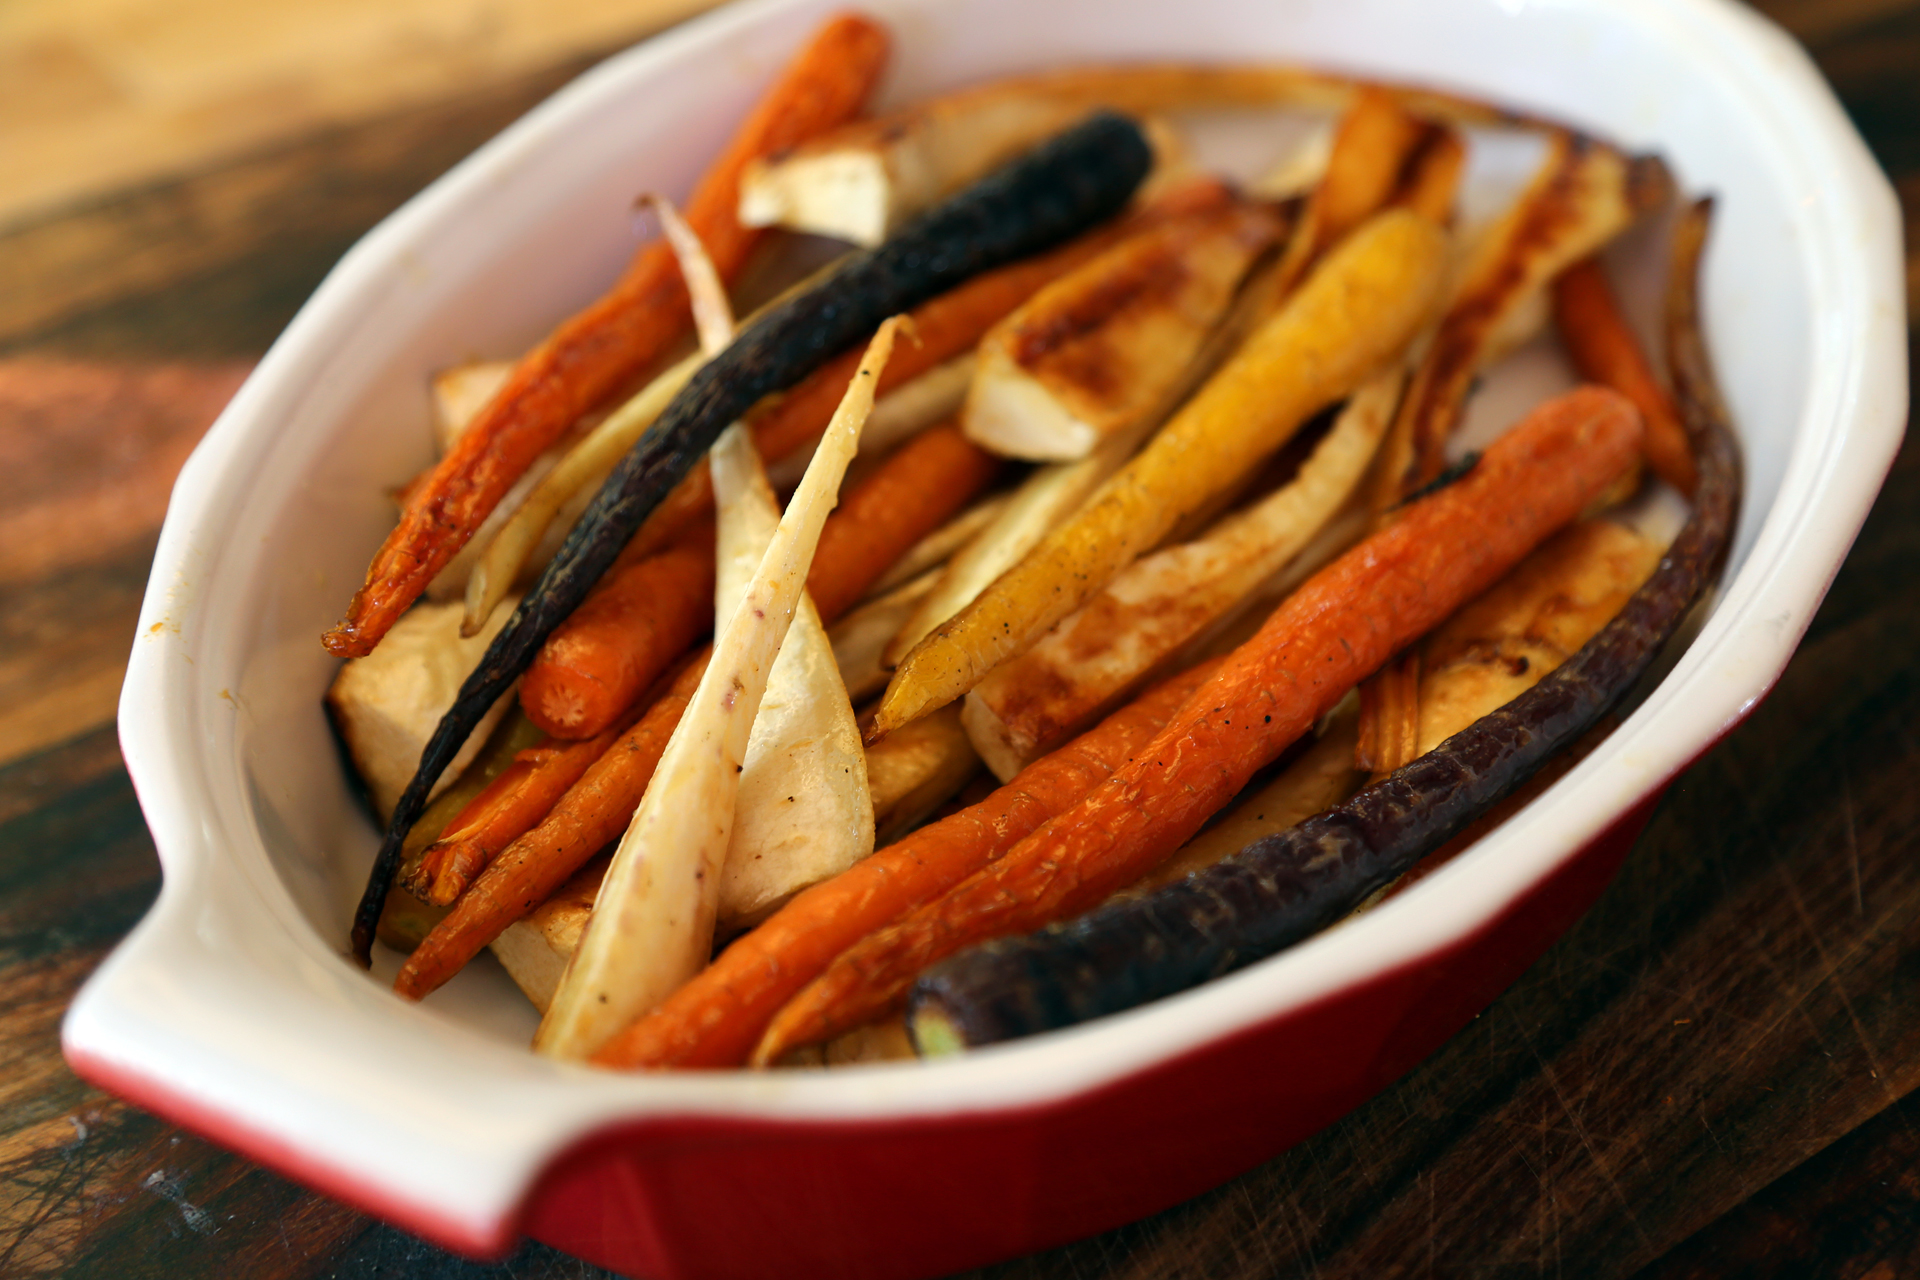 Serve the Honey-Roasted Carrots and Parsnips right away.